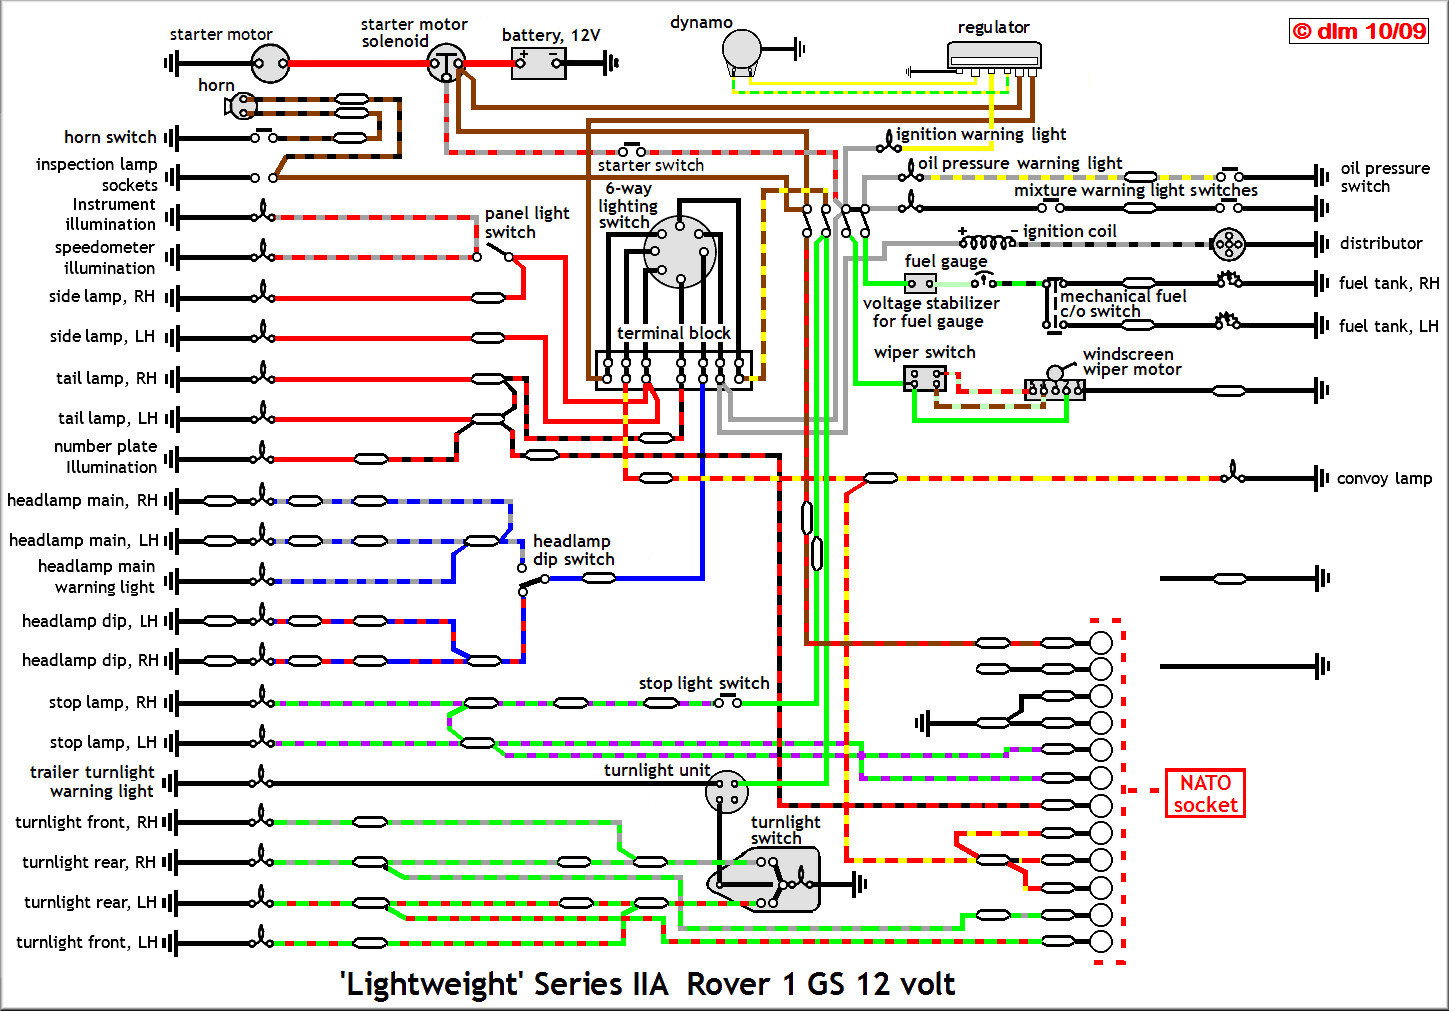 DIAGRAM] 2002 Land Rover Wiring Diagram FULL Version HD Quality Wiring  Diagram - CHARTMAPDIAGRAM.JEPIX.FRchartmapdiagram.jepix.fr